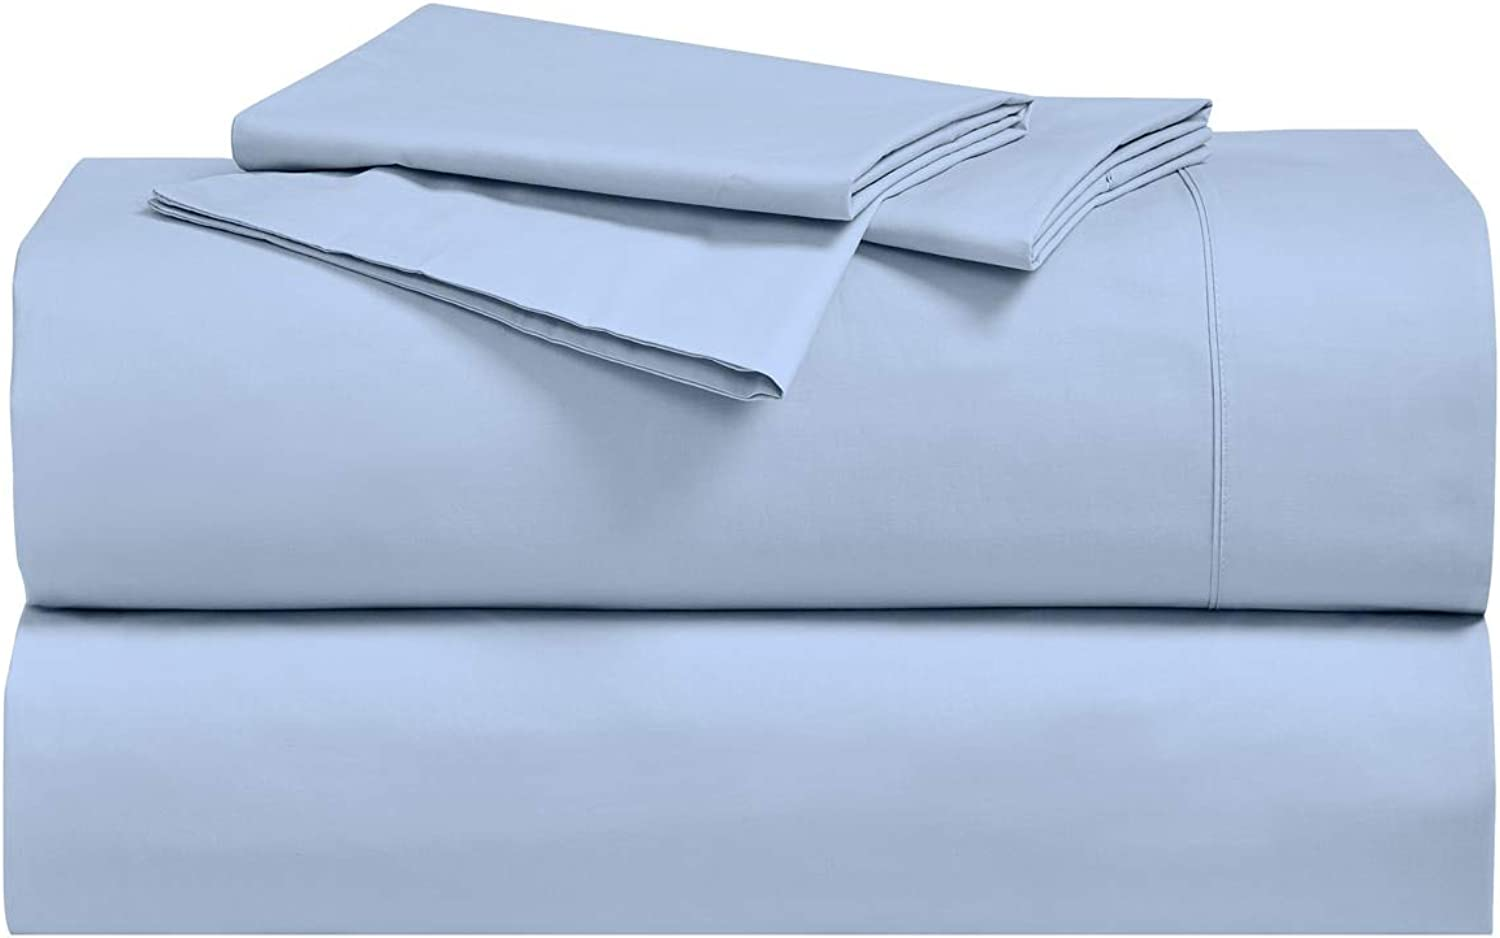 Royal's Solid bluee 250-Thread-Count 4pc King Bed Sheet Set 100-Percent Cotton, Superior Percale Weave, Crispy Soft, Deep Pocket, 100% Cotton